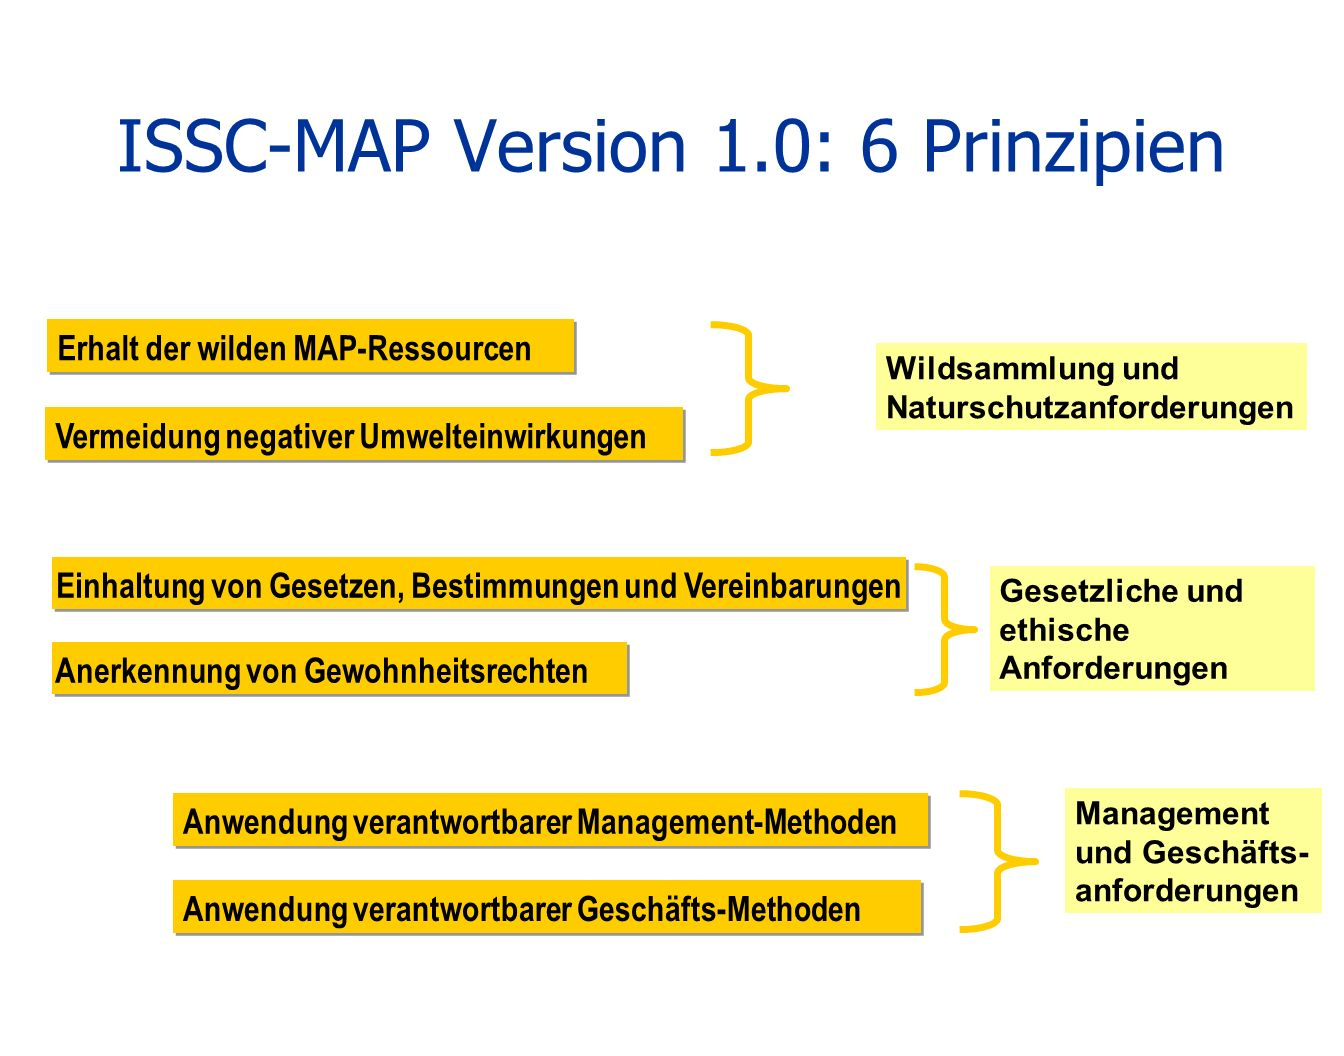 ISSC-MAP Version 1.0: 6 Prinzipien